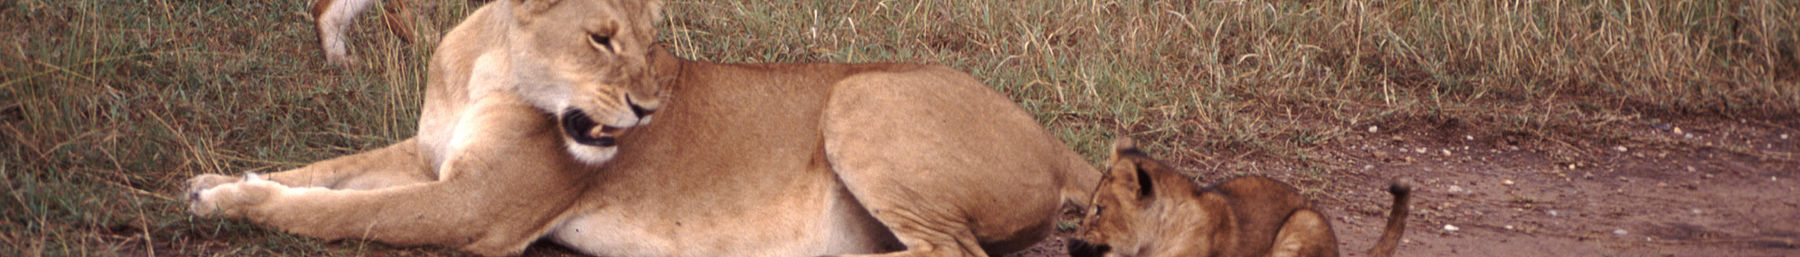 Kenya banner Lioness and cub.jpg